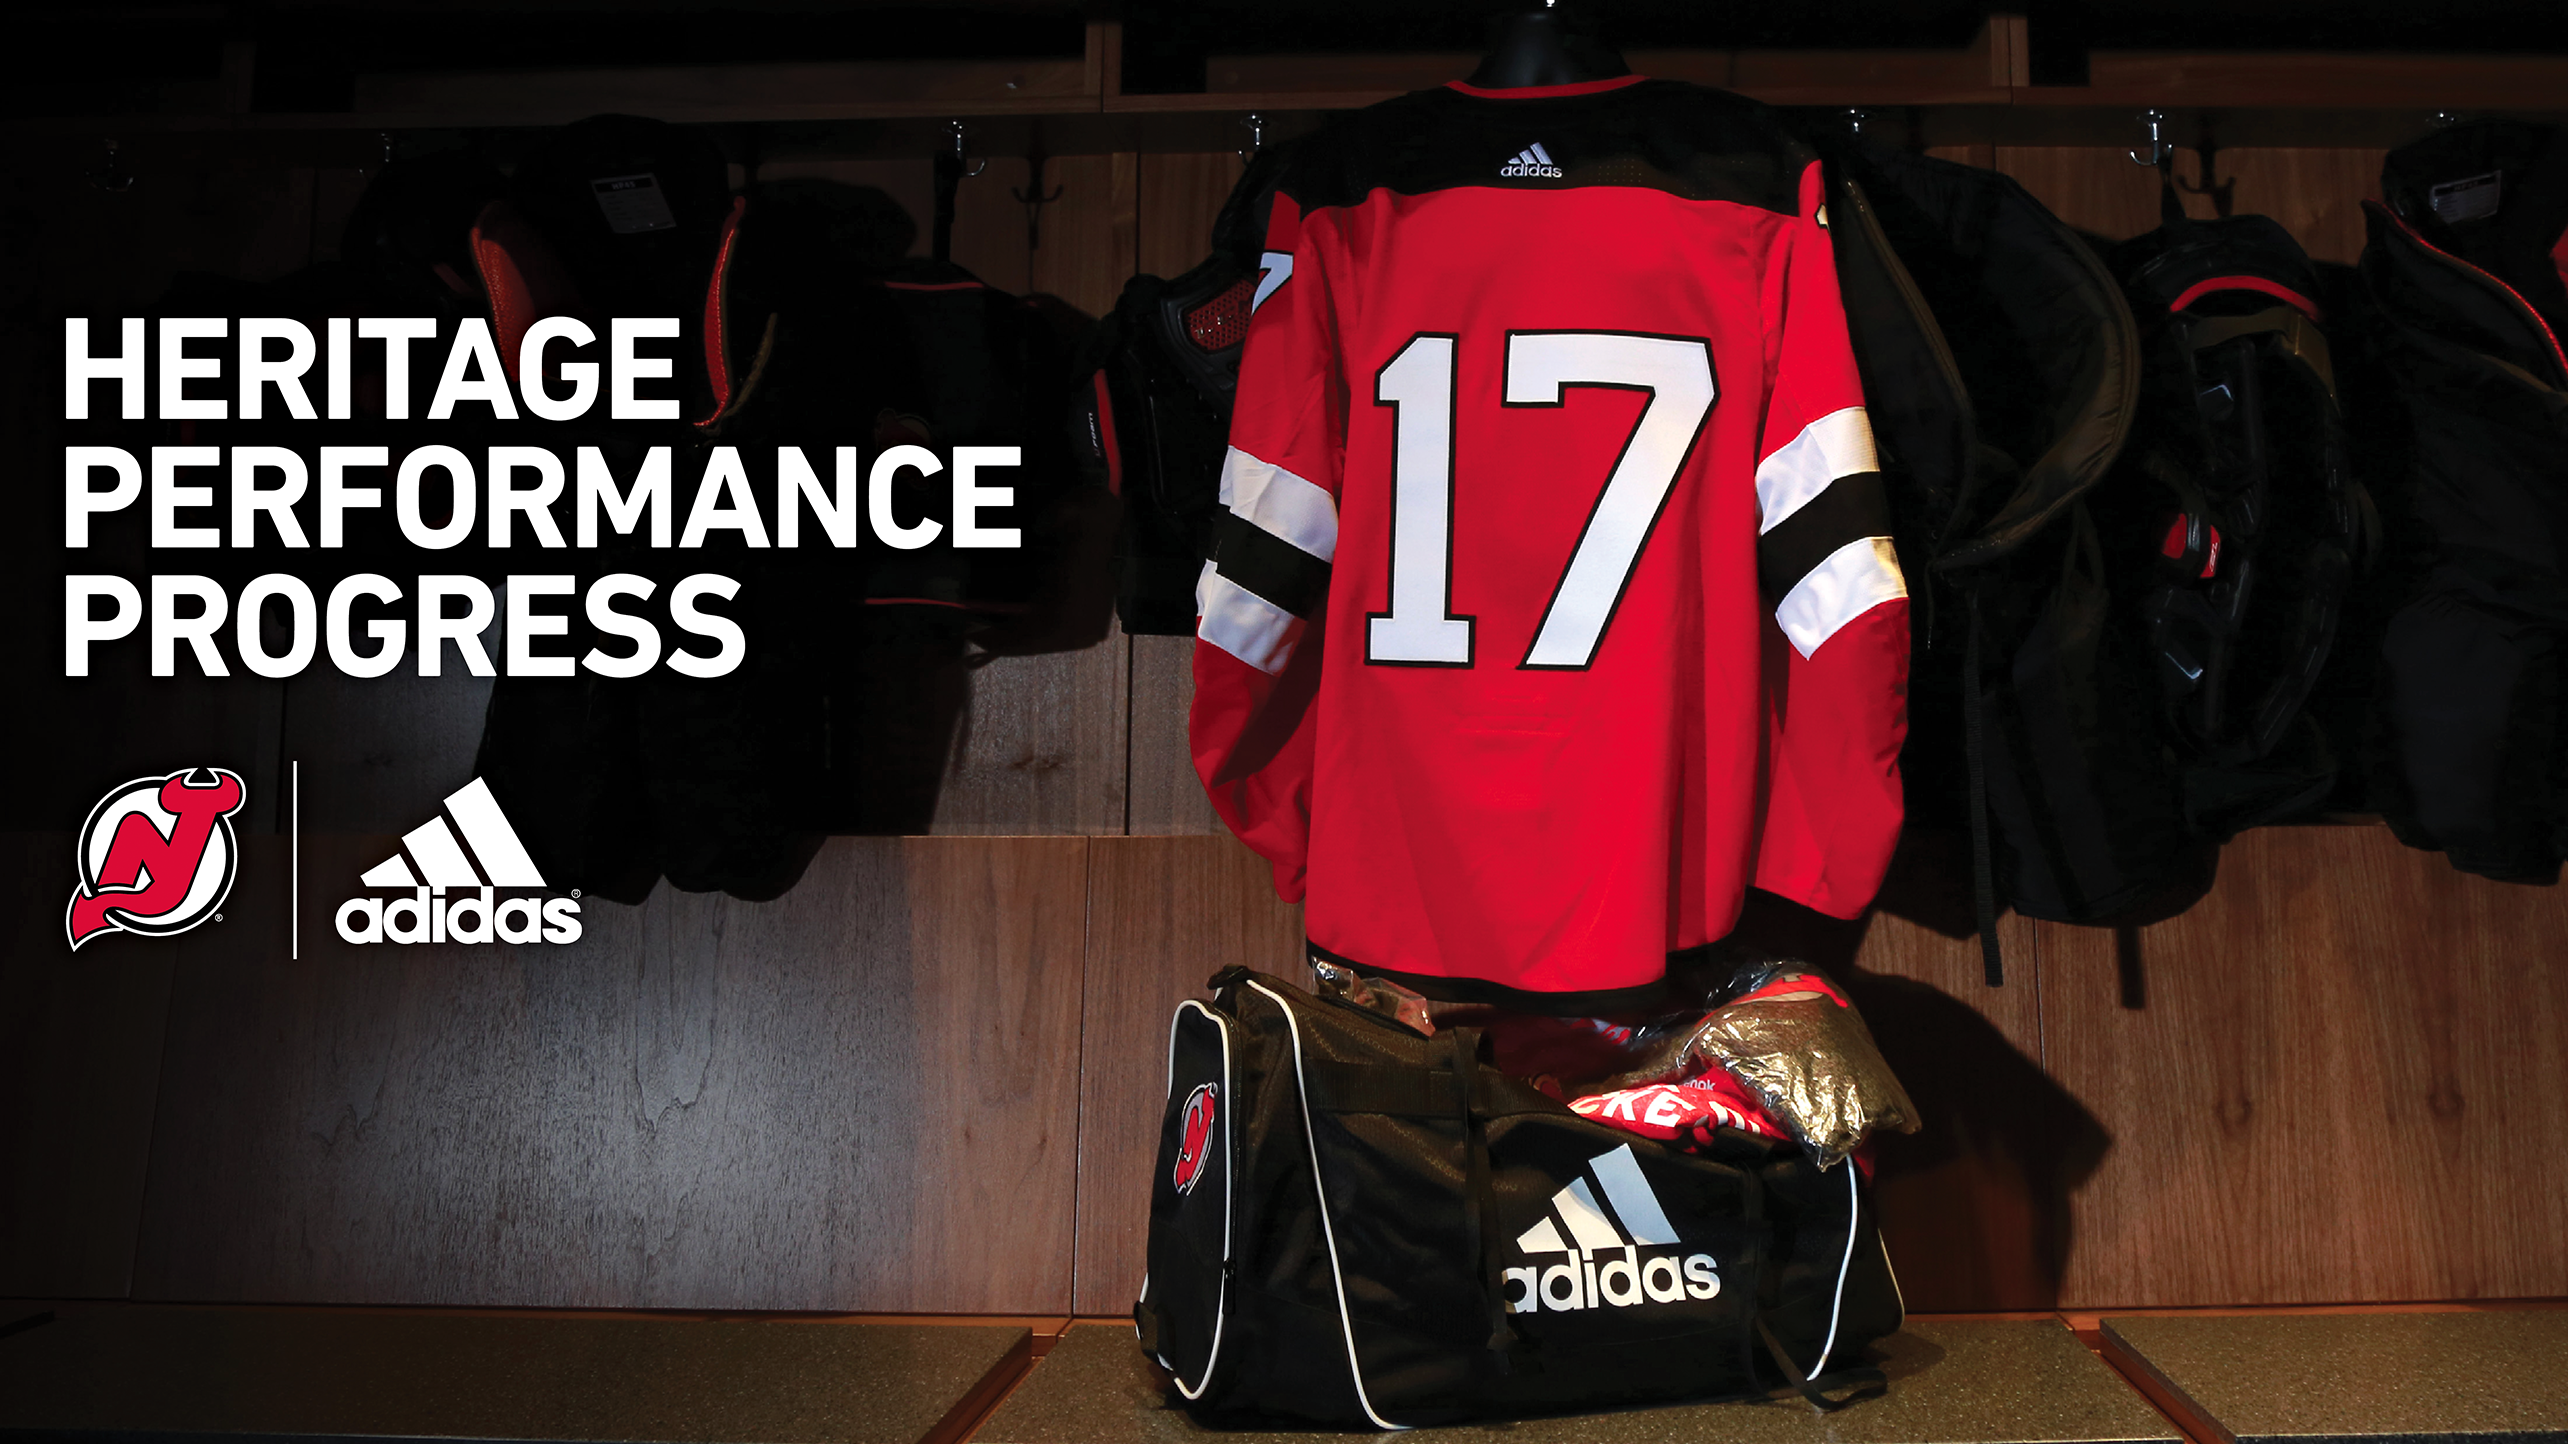 New Jersey Devils - Jersey stall